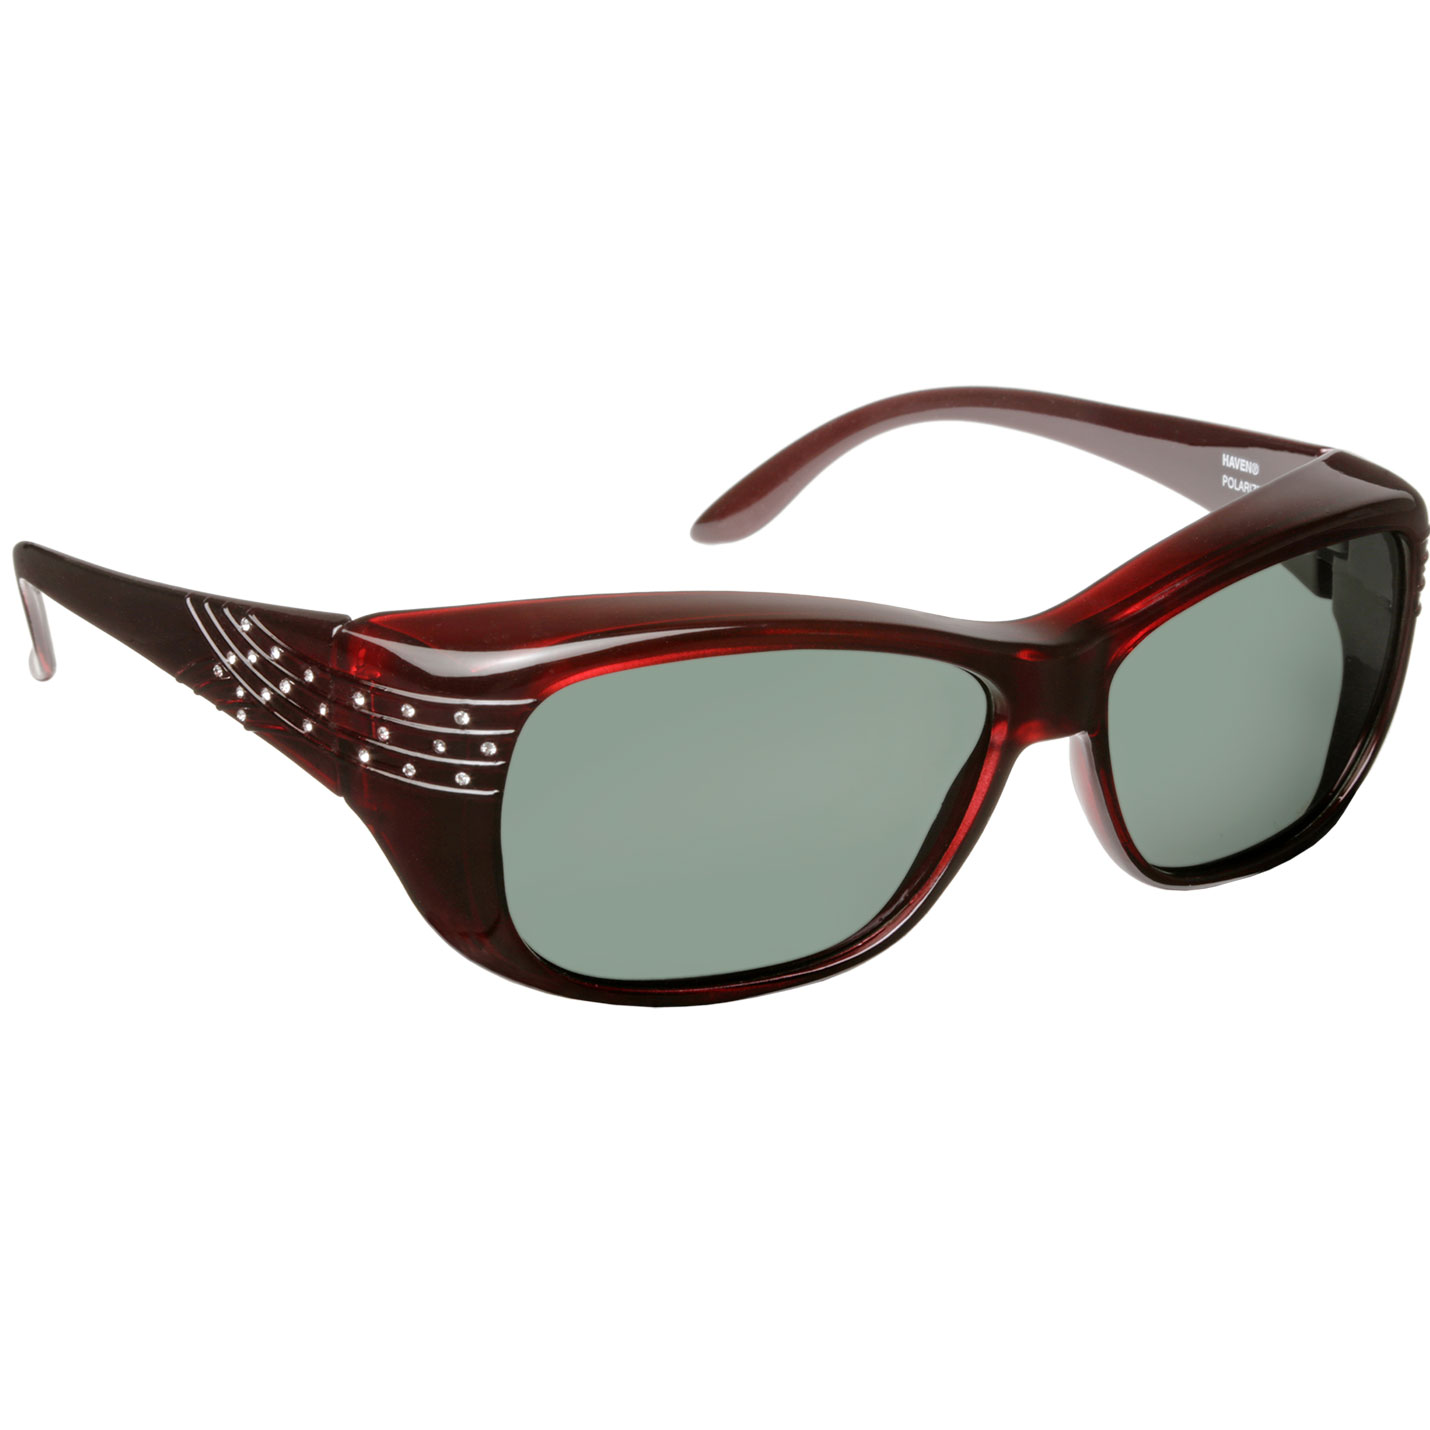 1d3223020d Haven Fit Over Sunglasses - Morgan Crystal Comet - Kleargo